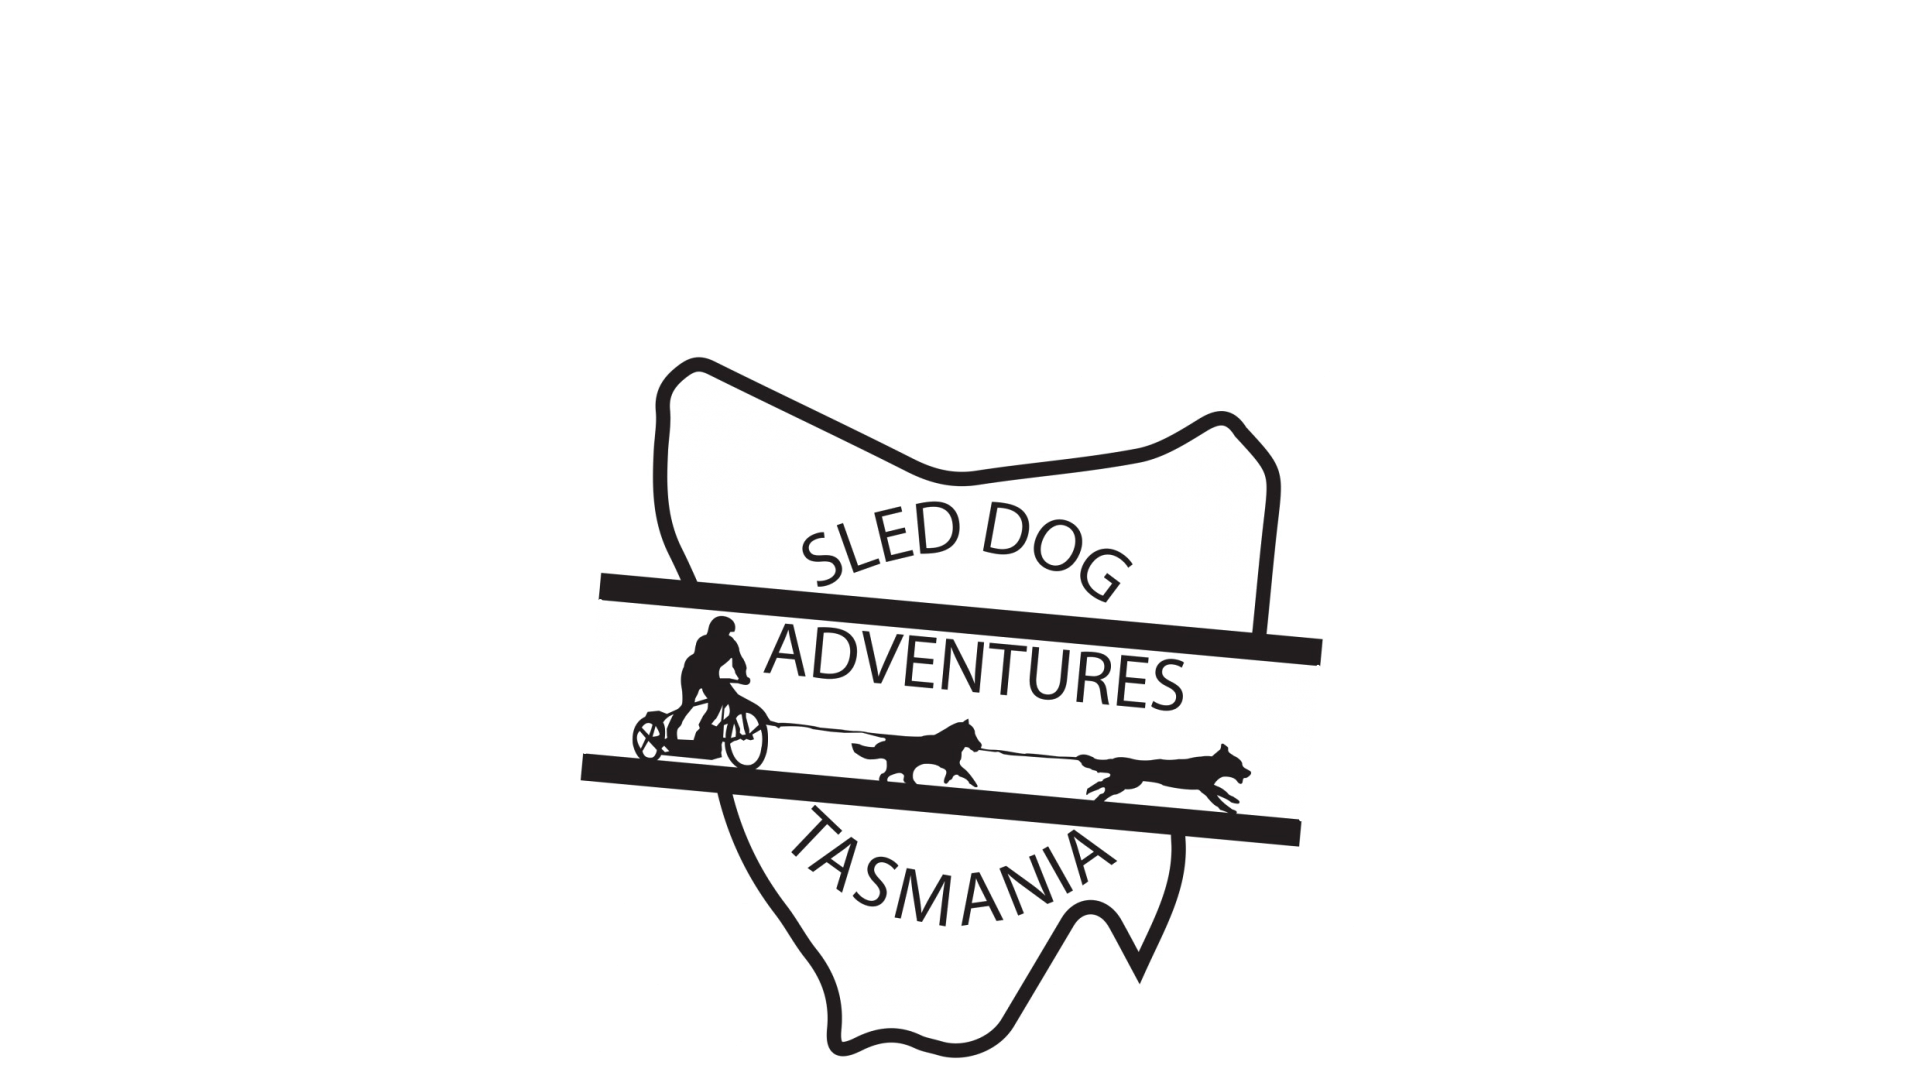 Sled Dog Adventures Tasmania